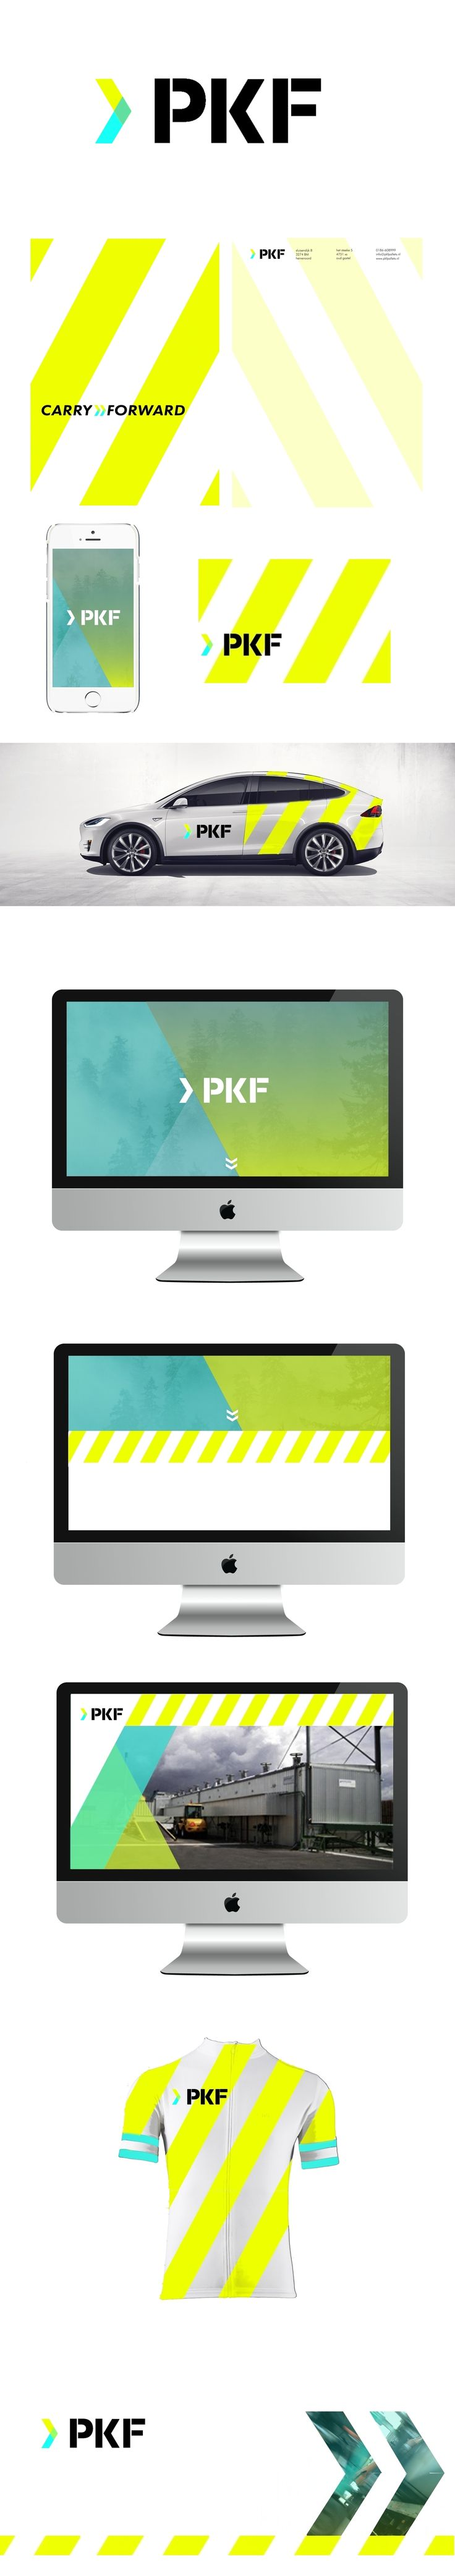 PKF is a pallet construction company. The > shape is inspired by the old logo and represents the innovative and forward thinking strategy of the company. It also is a visual representation of their slogan, which is: CARRY FORWARD. Carry for pallets that carry loads and a more figurative meaning that they take things to a new level.